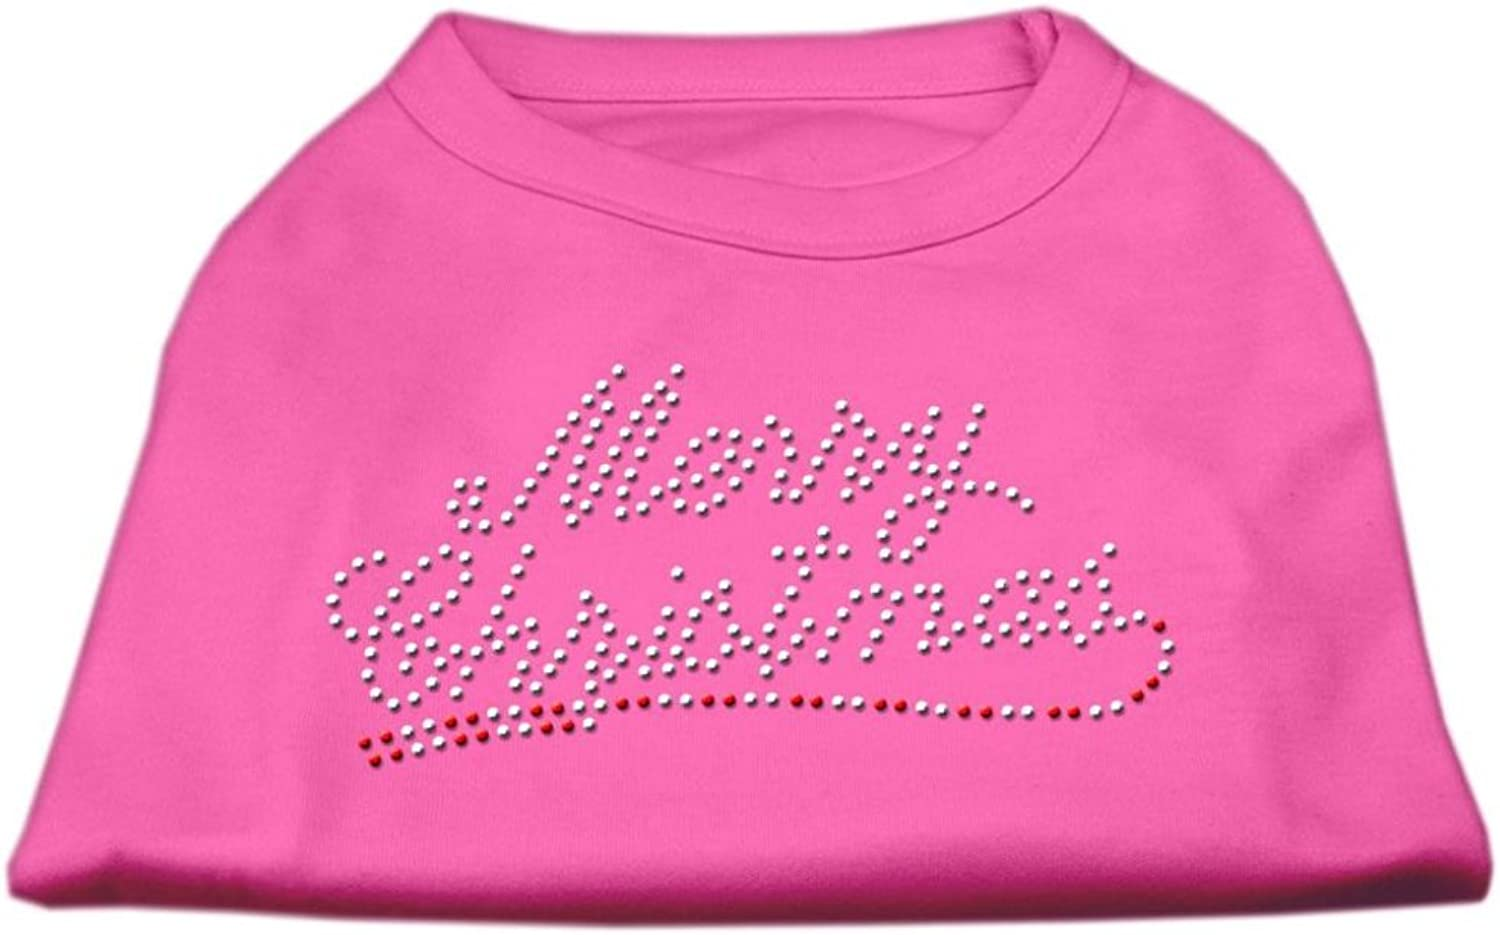 Mirage Pet Products 14Inch Merry Christmas Rhinestone Print Shirt for Pets, Large, Bright Pink